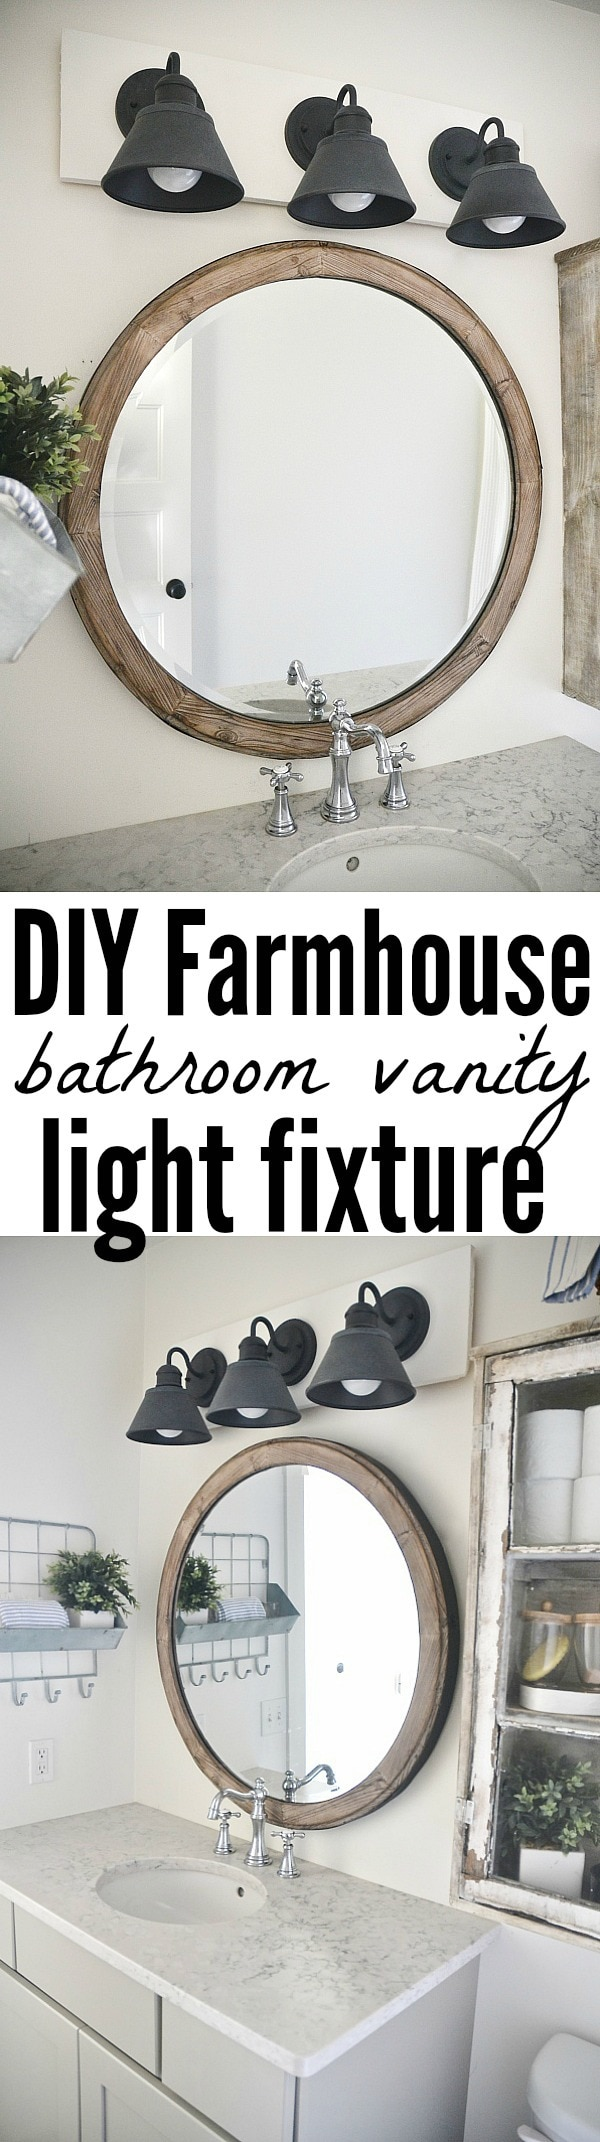 Great Check out this DIY light fixture HERE